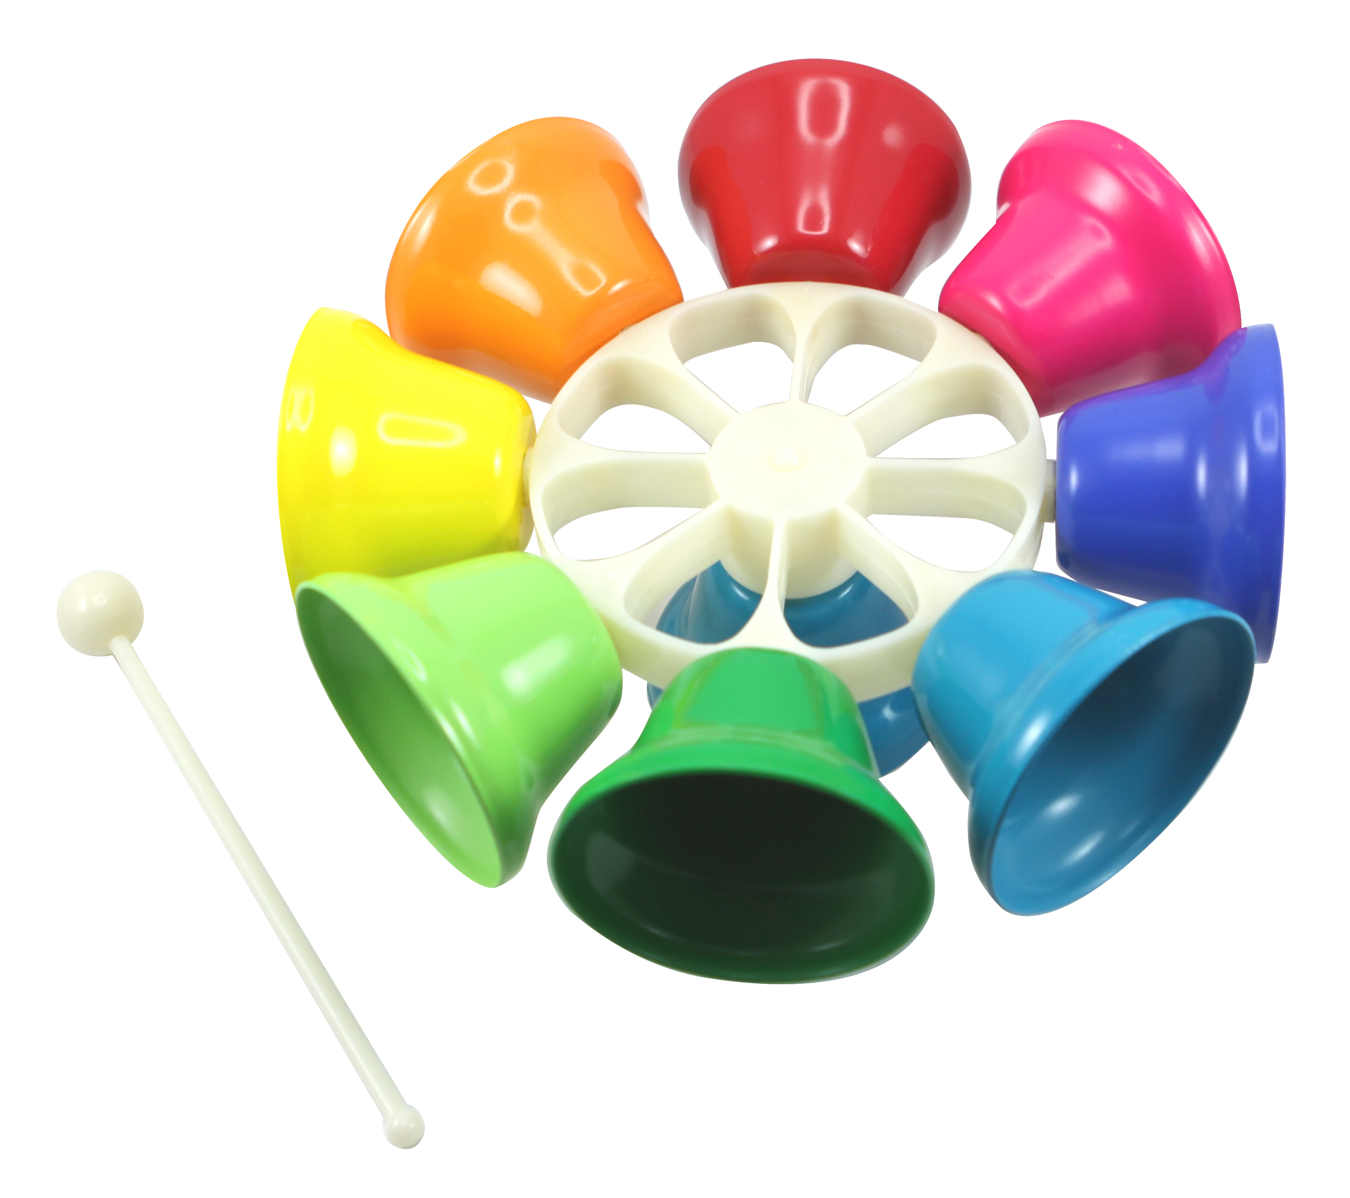 Children's Rainbow Music Percussion Spinning Hand Bells - 8 Tone